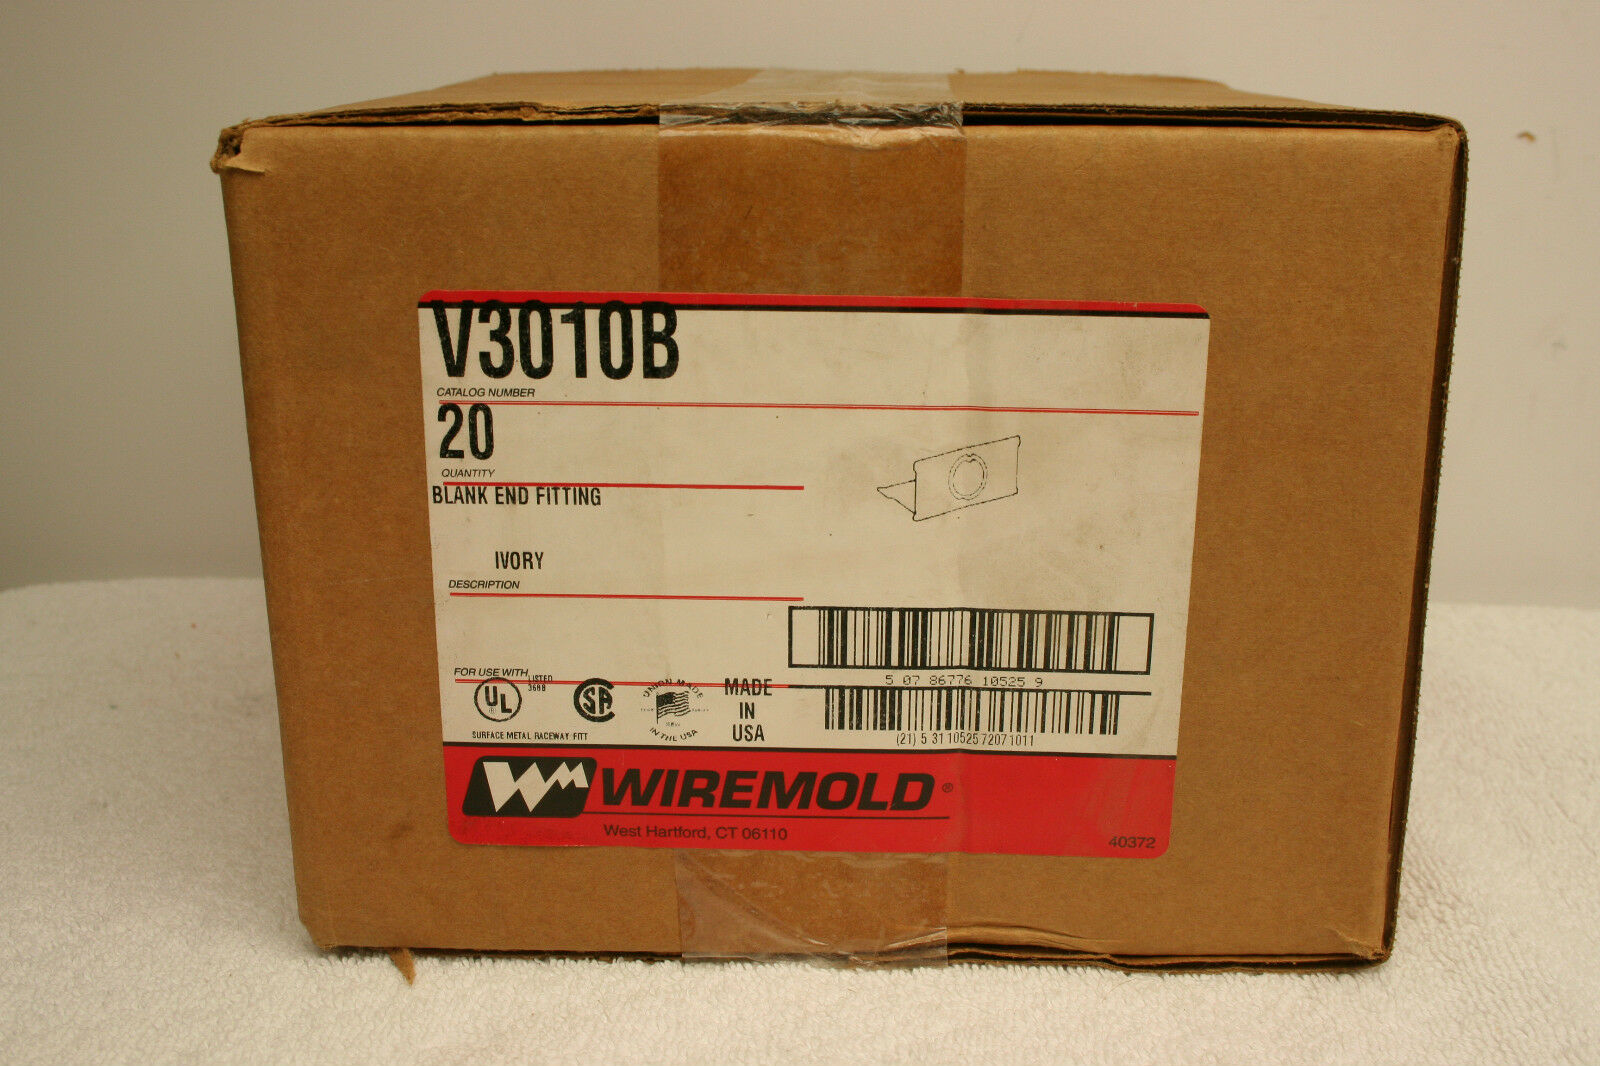 Wiremold V3010B Bland End Fitting SEALED Box of 20